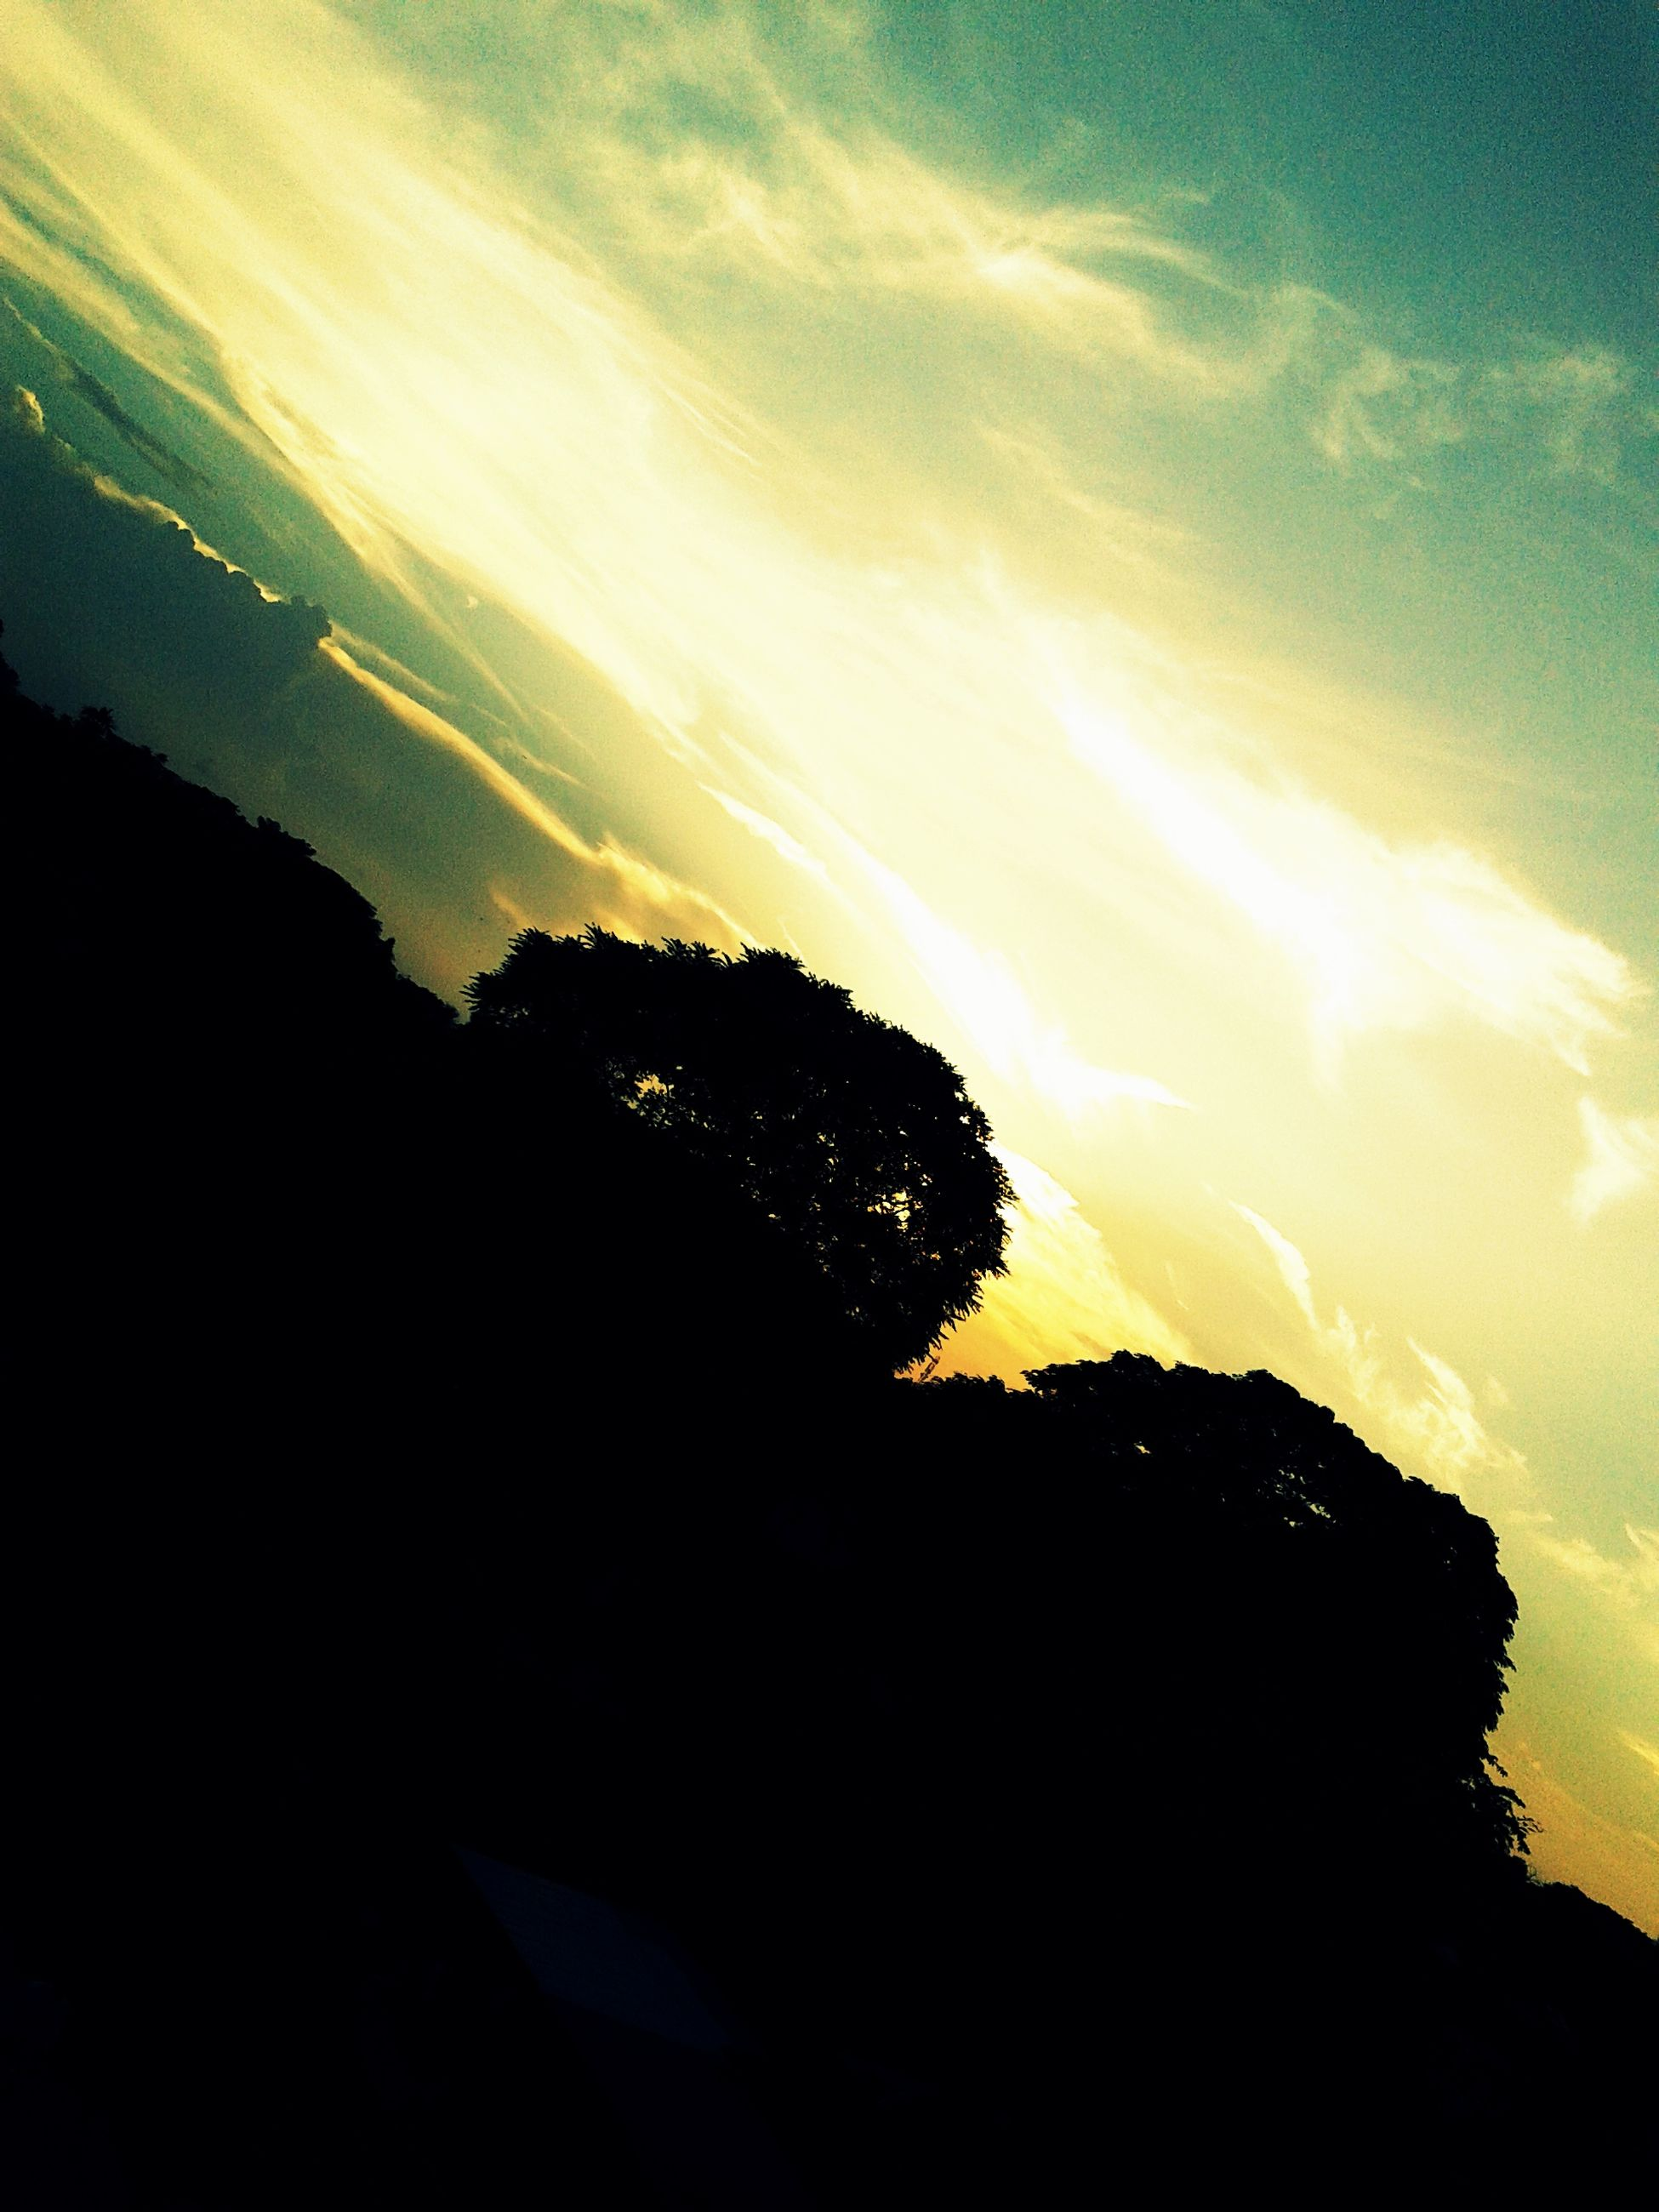 silhouette, sky, scenics, sunset, beauty in nature, tranquil scene, tranquility, tree, nature, cloud - sky, sunlight, idyllic, sun, low angle view, sunbeam, outdoors, cloud, mountain, no people, dusk